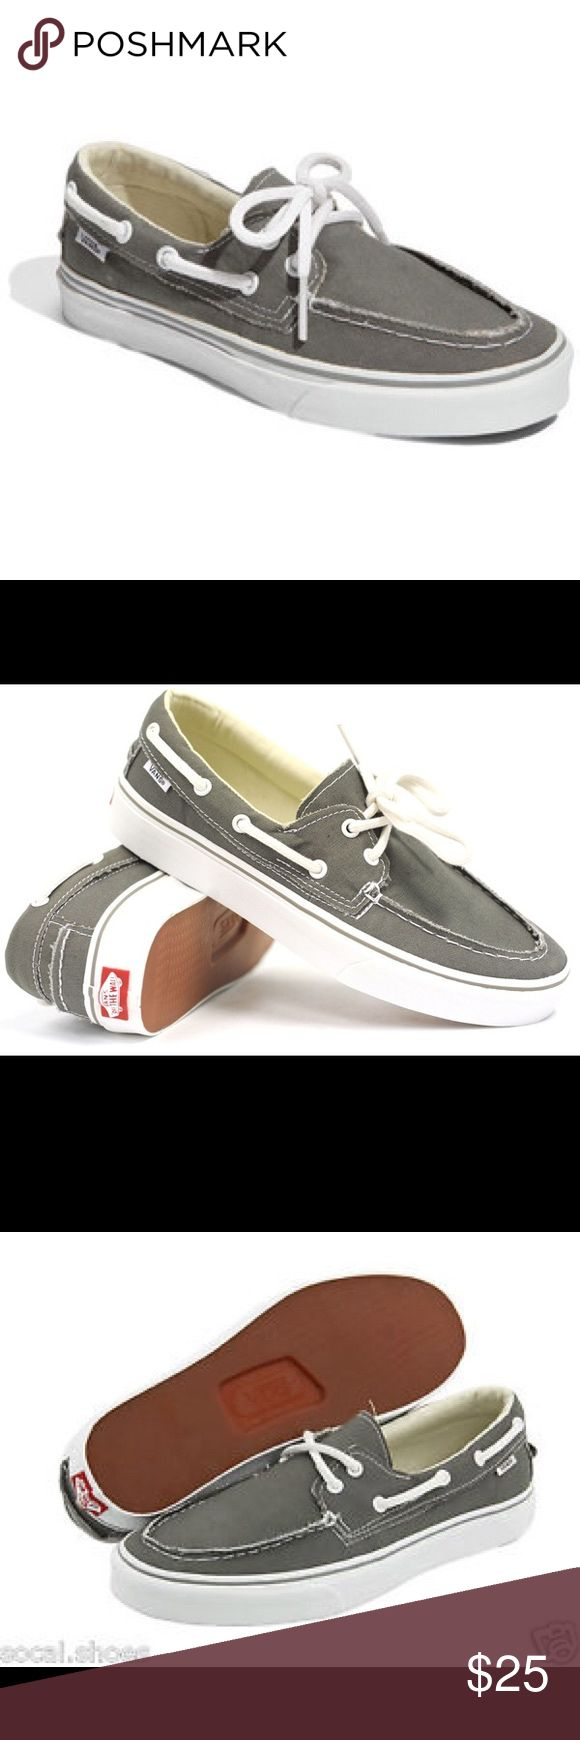 Vans Zapato Del Barco UNISEX Vans The Zapato Del Barco features a boat shoe made from canvas and given a rough edge for a worn look. It is built with padded insoles, metal eyelets and vulcanized tread. Worn, but in good condition. Vans Shoes Boat Shoes